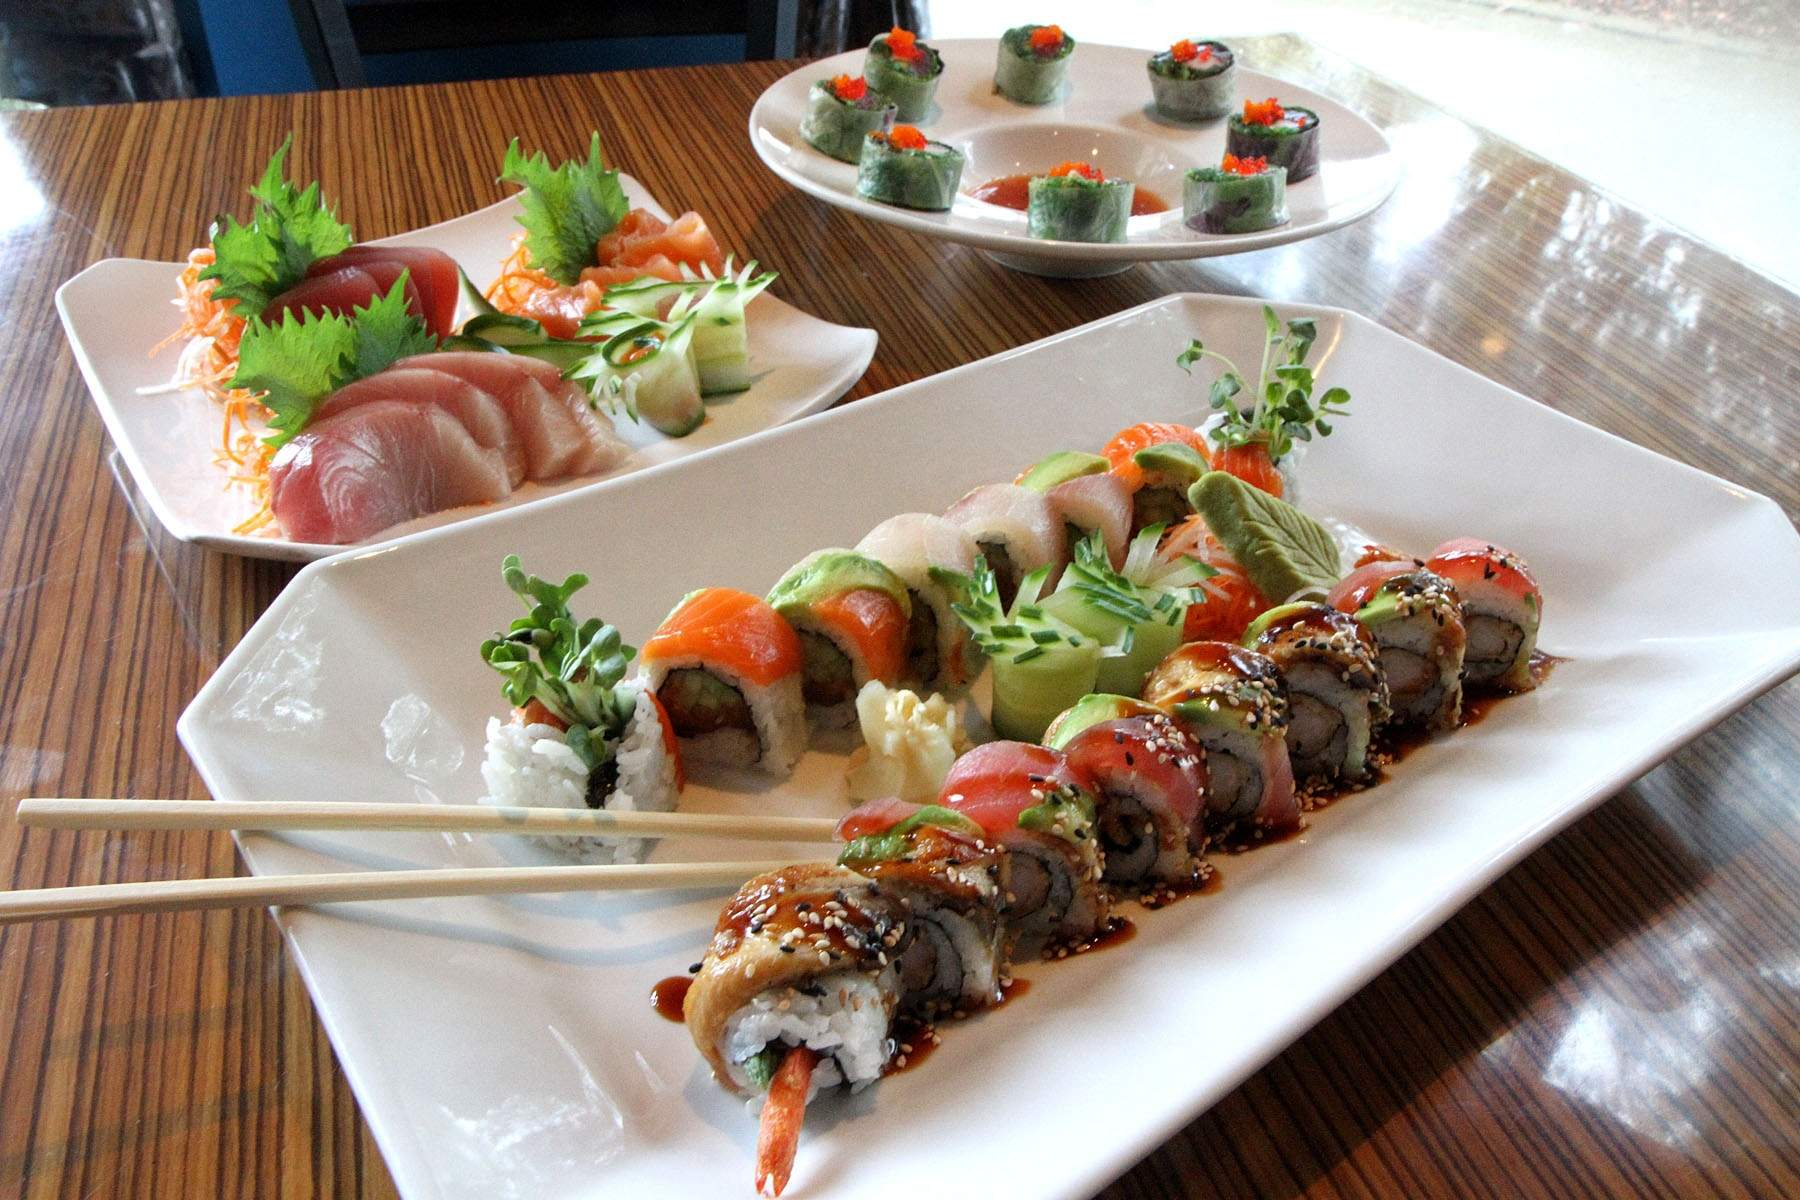 Dining Review: The Ocean Blue Sushi Bar is family friendly | tbo.com